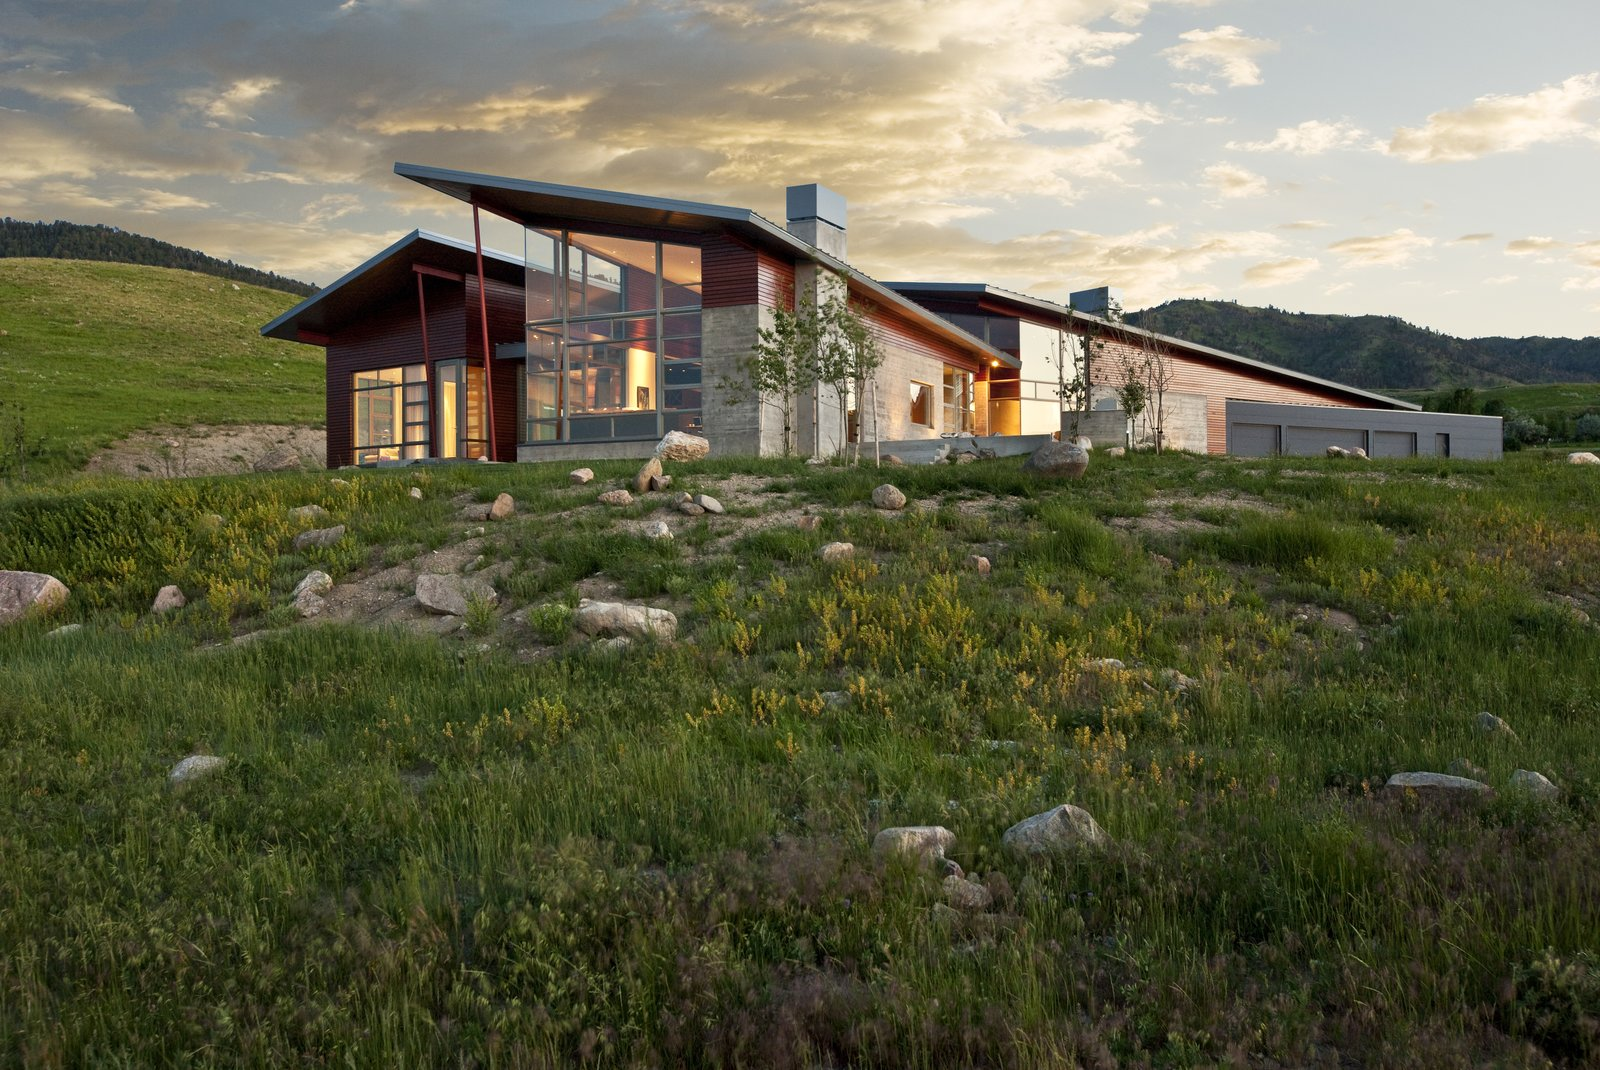 In response to the site's challenges, the architects designed a low-slung structure anchored in concrete, steel and wood that clings to the base of a hillside.  Casper Residence by Abramson Teiger Architects